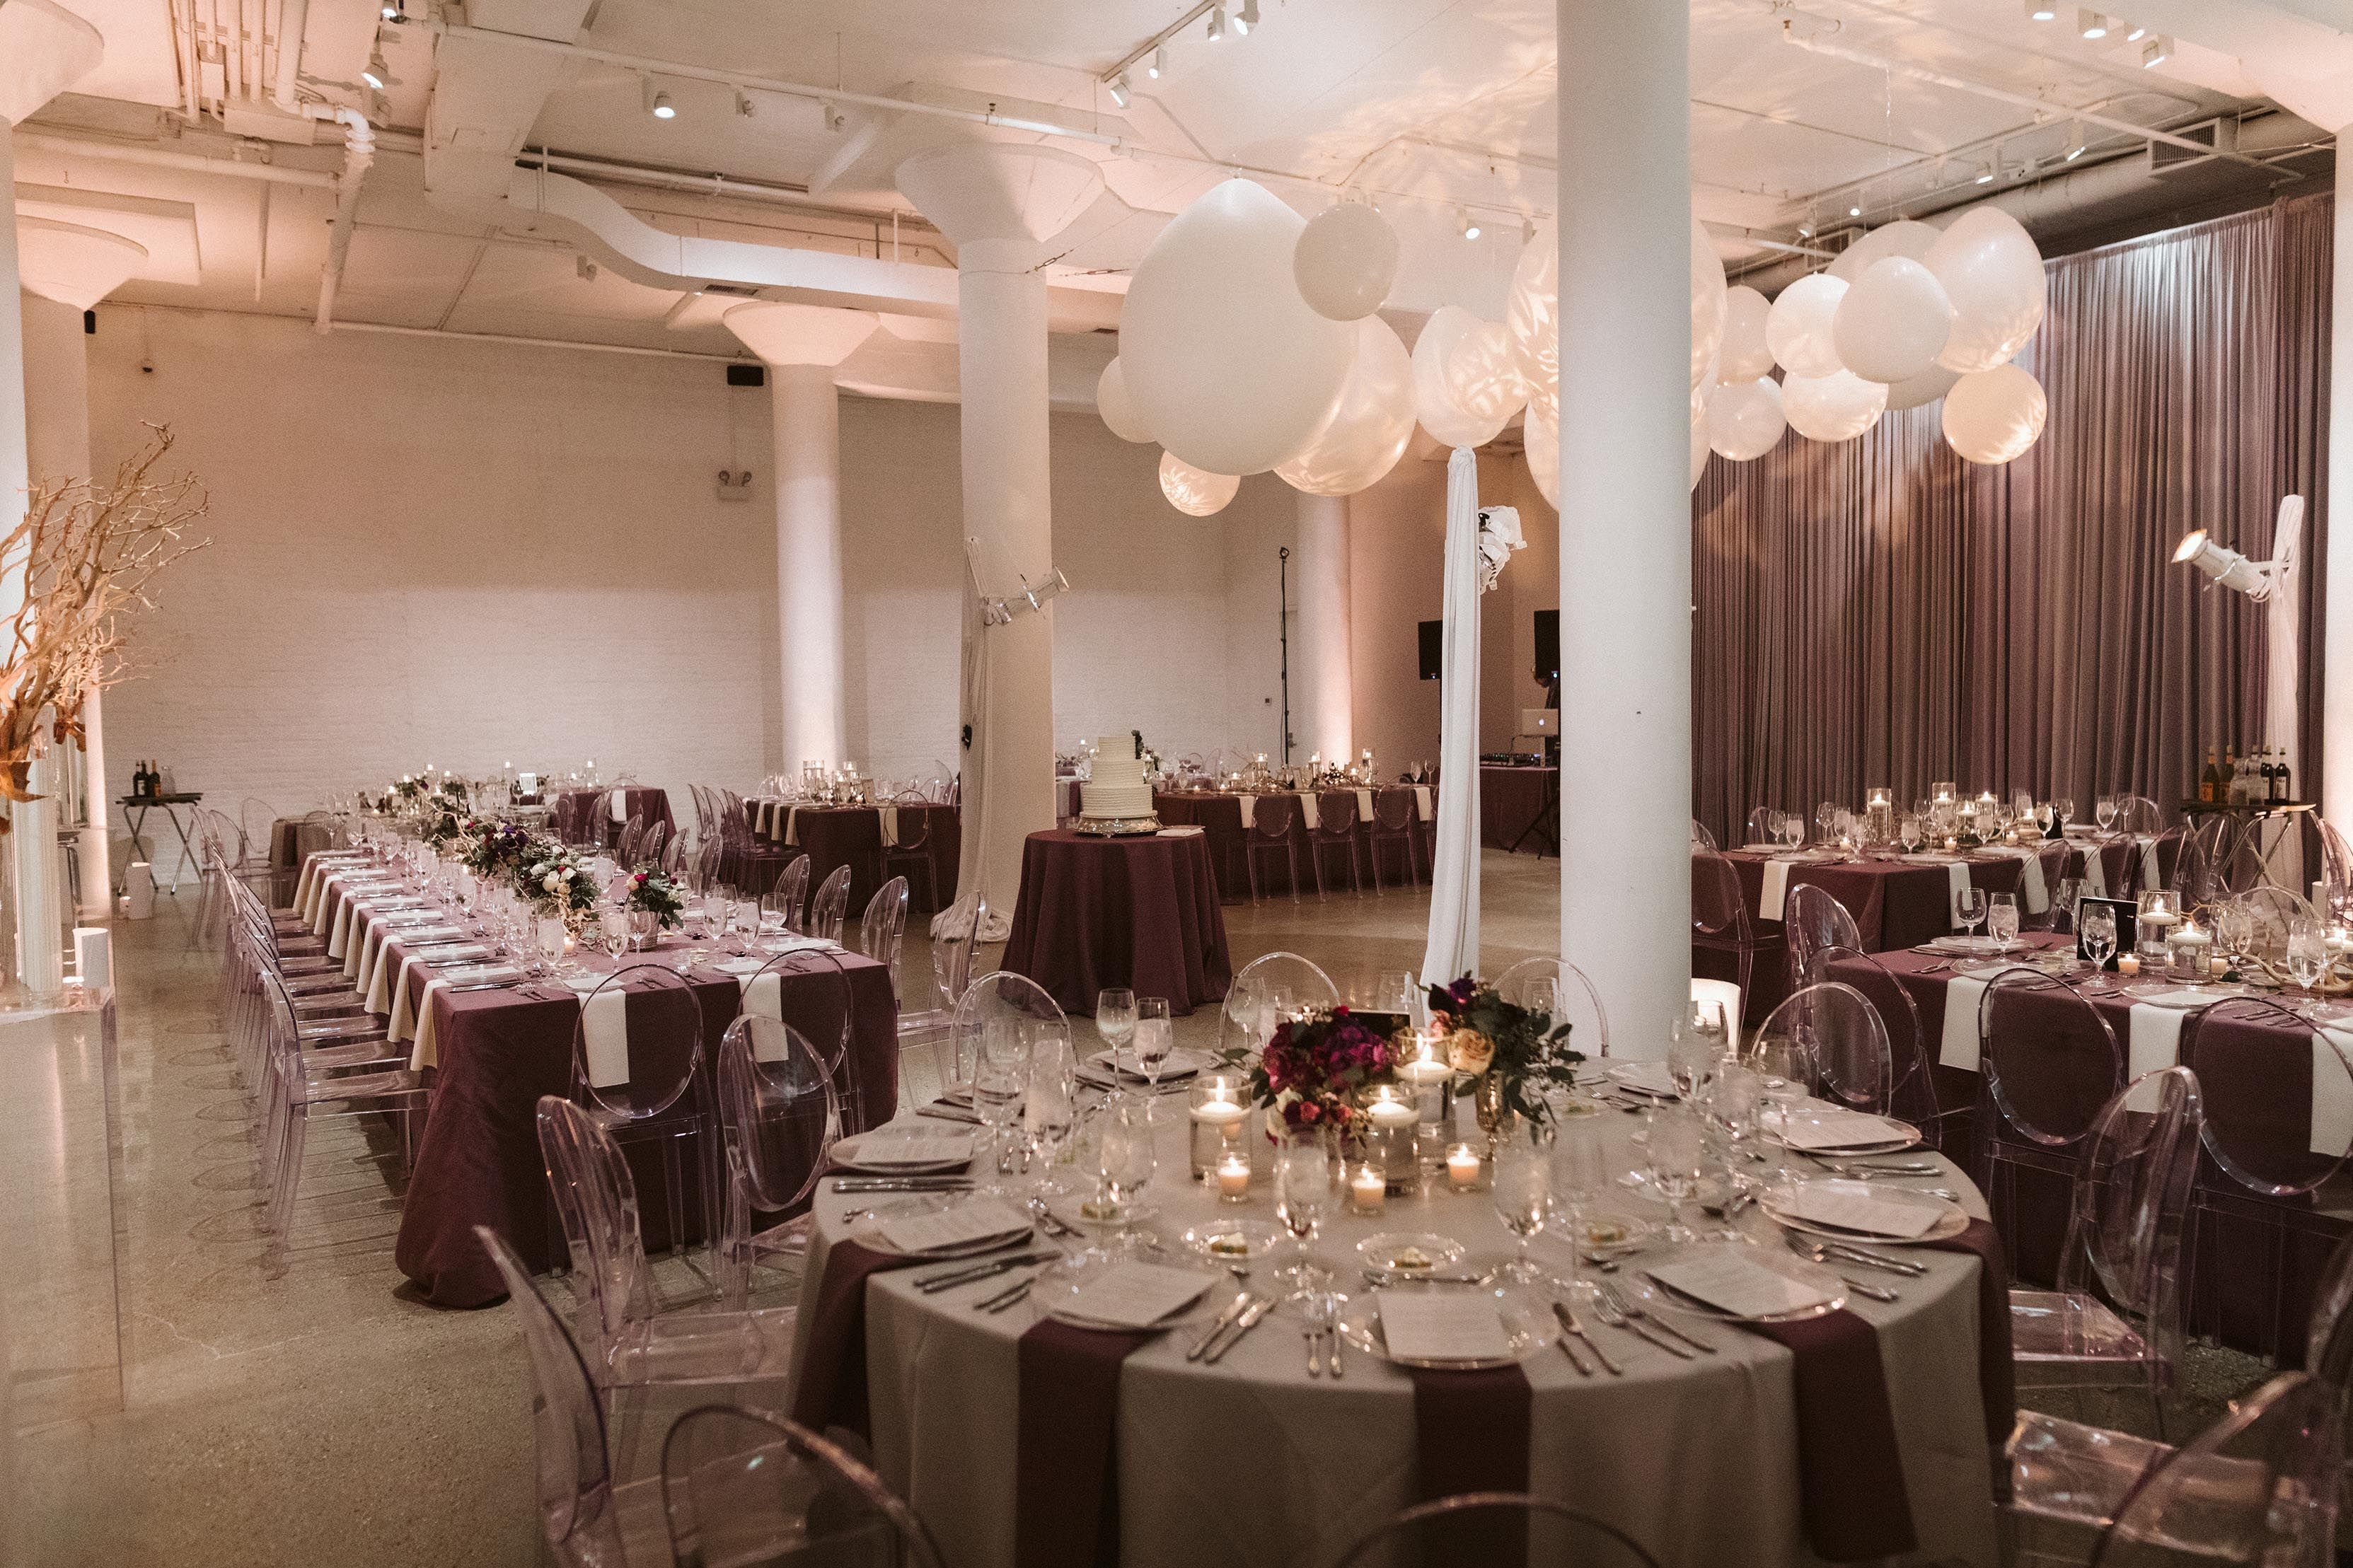 Contemporary Wedding Reception With Maroon Linens Grey Tablecloths White Balloon Ceiling Display Gold Tree Branches Ghost Chairs Floral: Grey White Wedding Venues At Websimilar.org